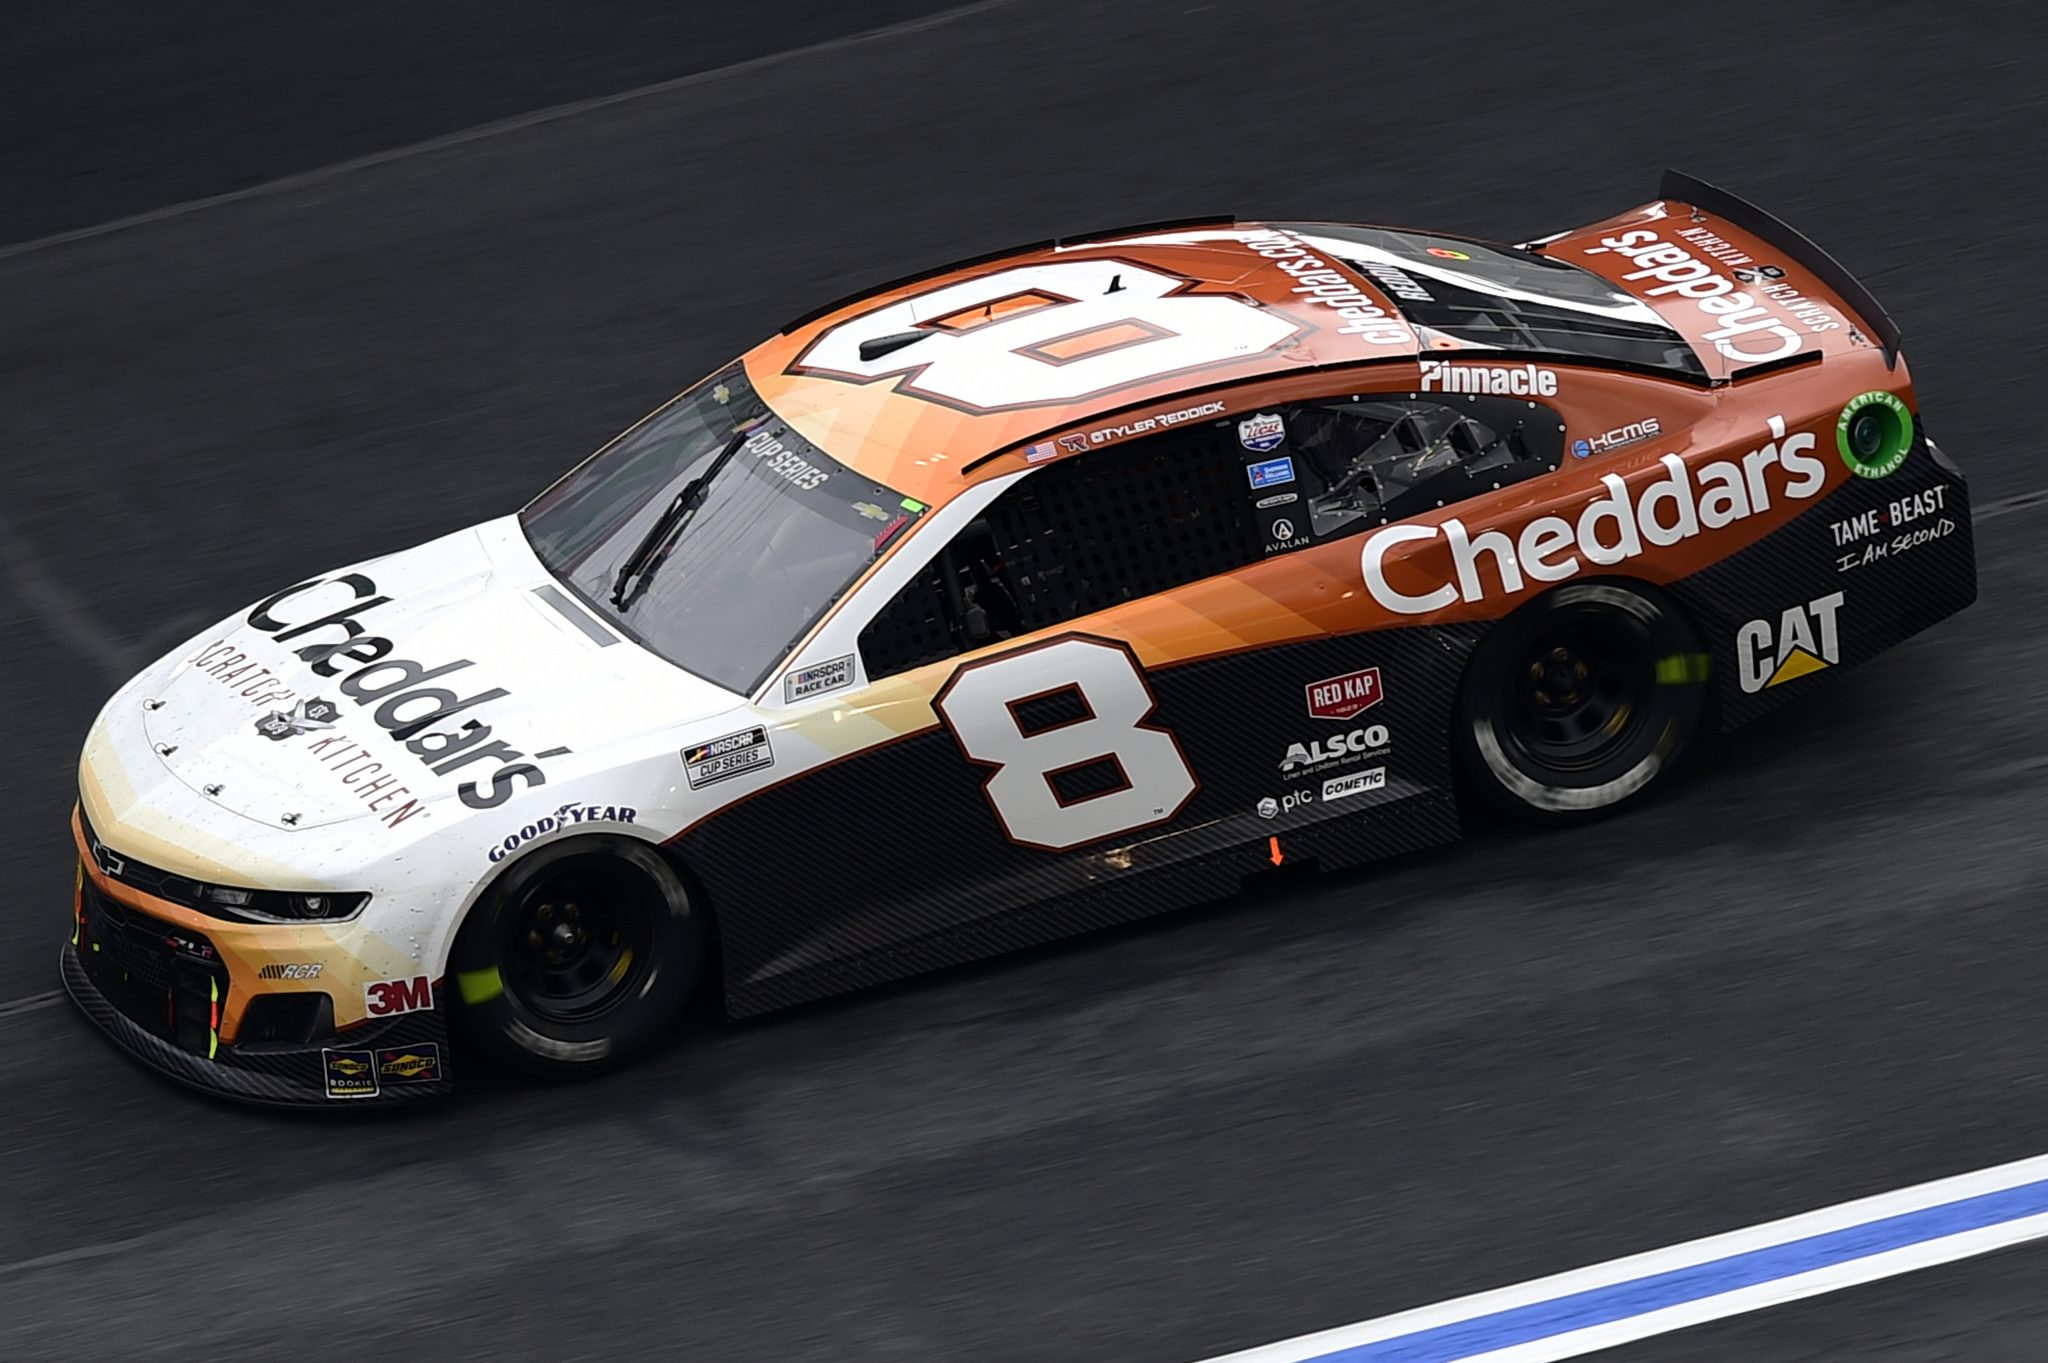 CONCORD, NORTH CAROLINA - OCTOBER 11: Tyler Reddick, driver of the #8 Cheddar's Chevrolet, drives during the NASCAR Cup Series Bank of America ROVAL 400 at Charlotte Motor Speedway on October 11, 2020 in Concord, North Carolina. (Photo by Jared C. Tilton/Getty Images) | Getty Images